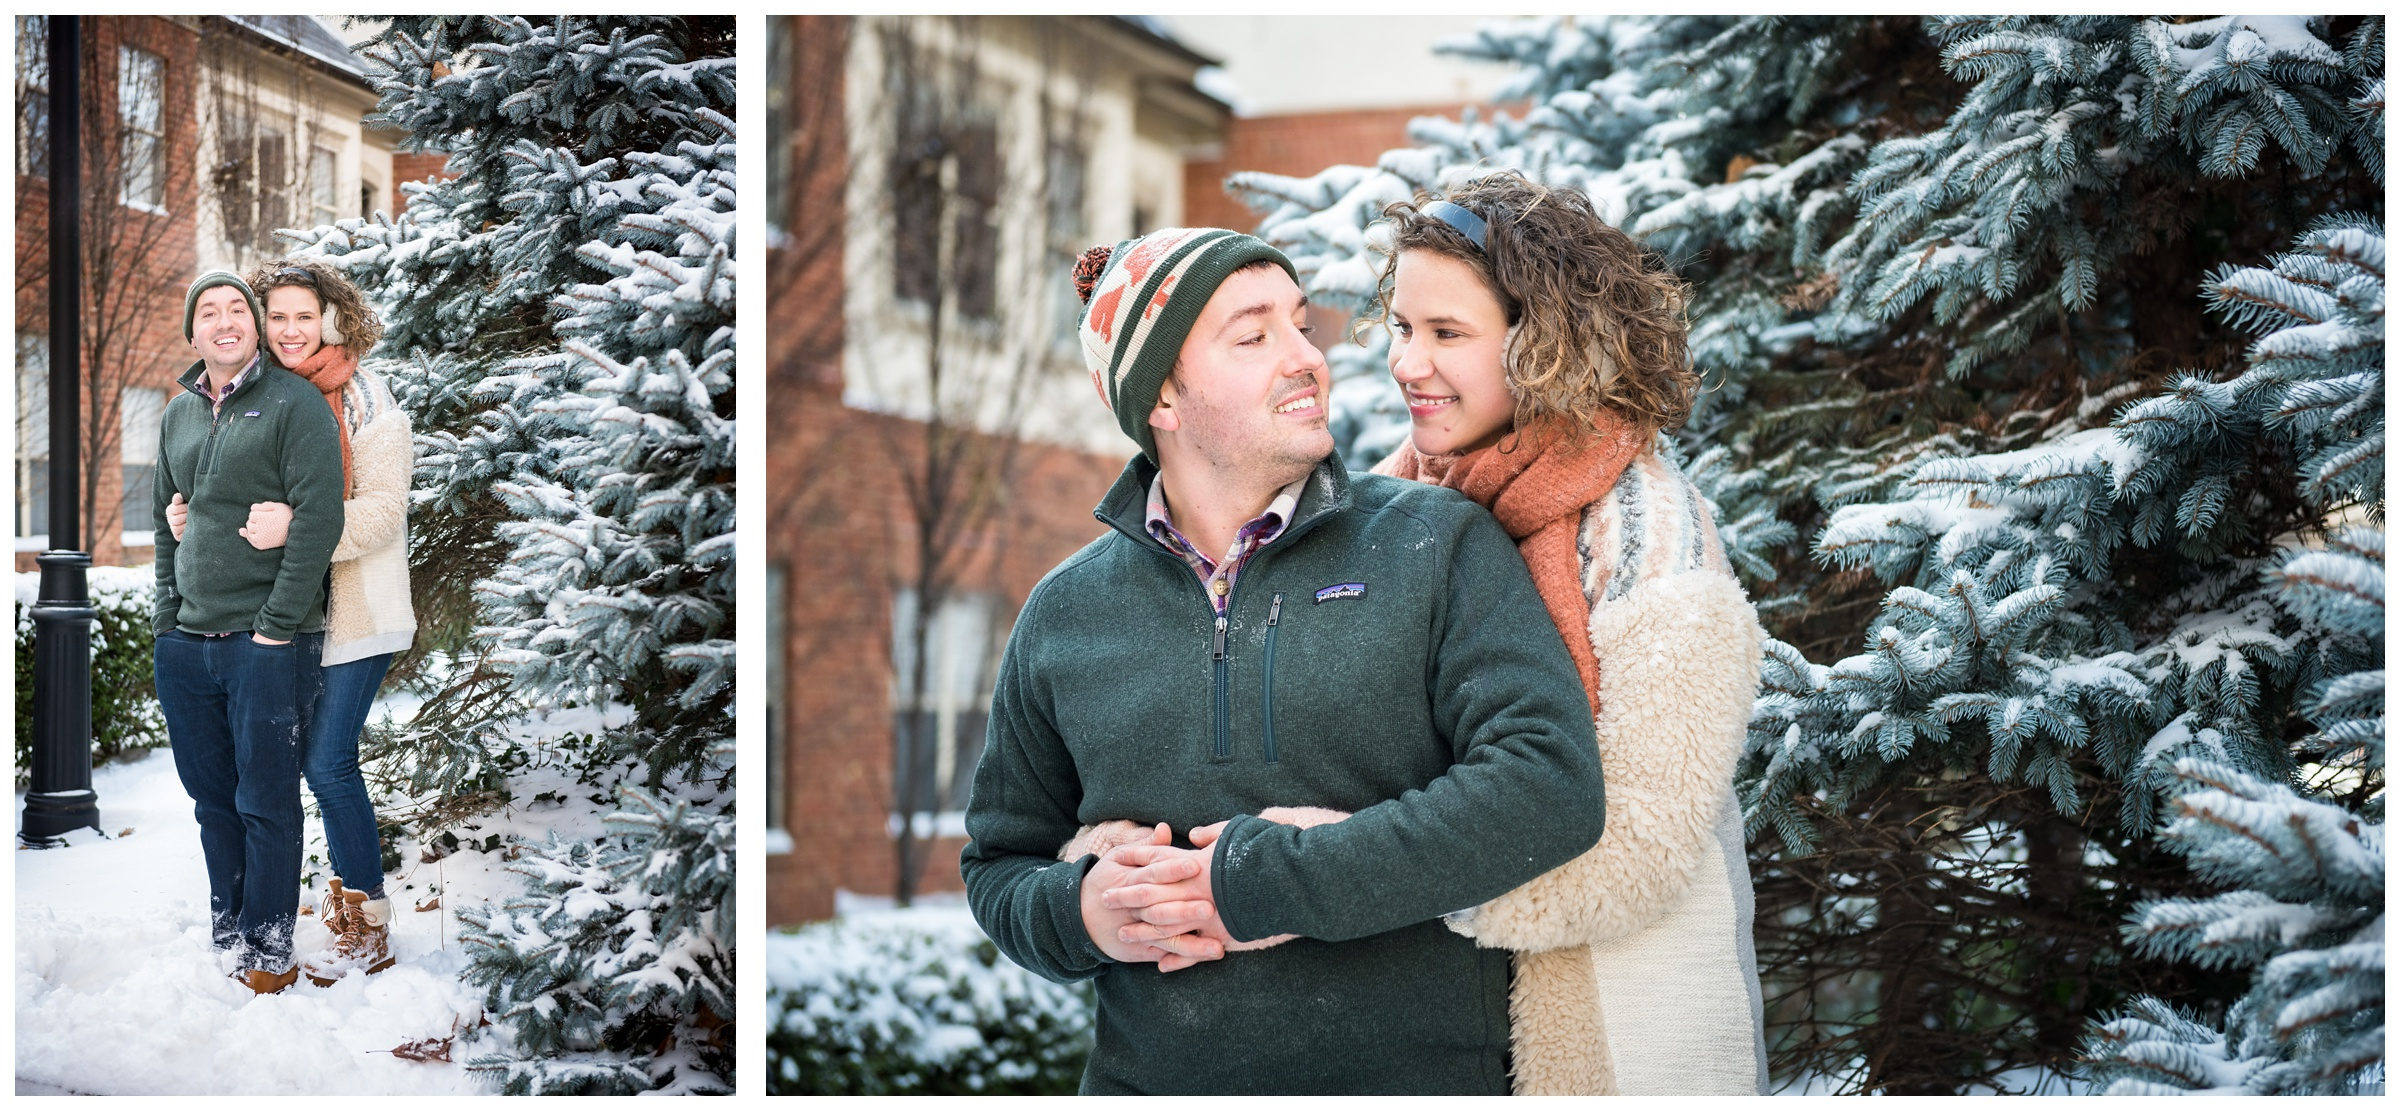 snowy engagement photos in the Short North, Columbus, Ohio during winter